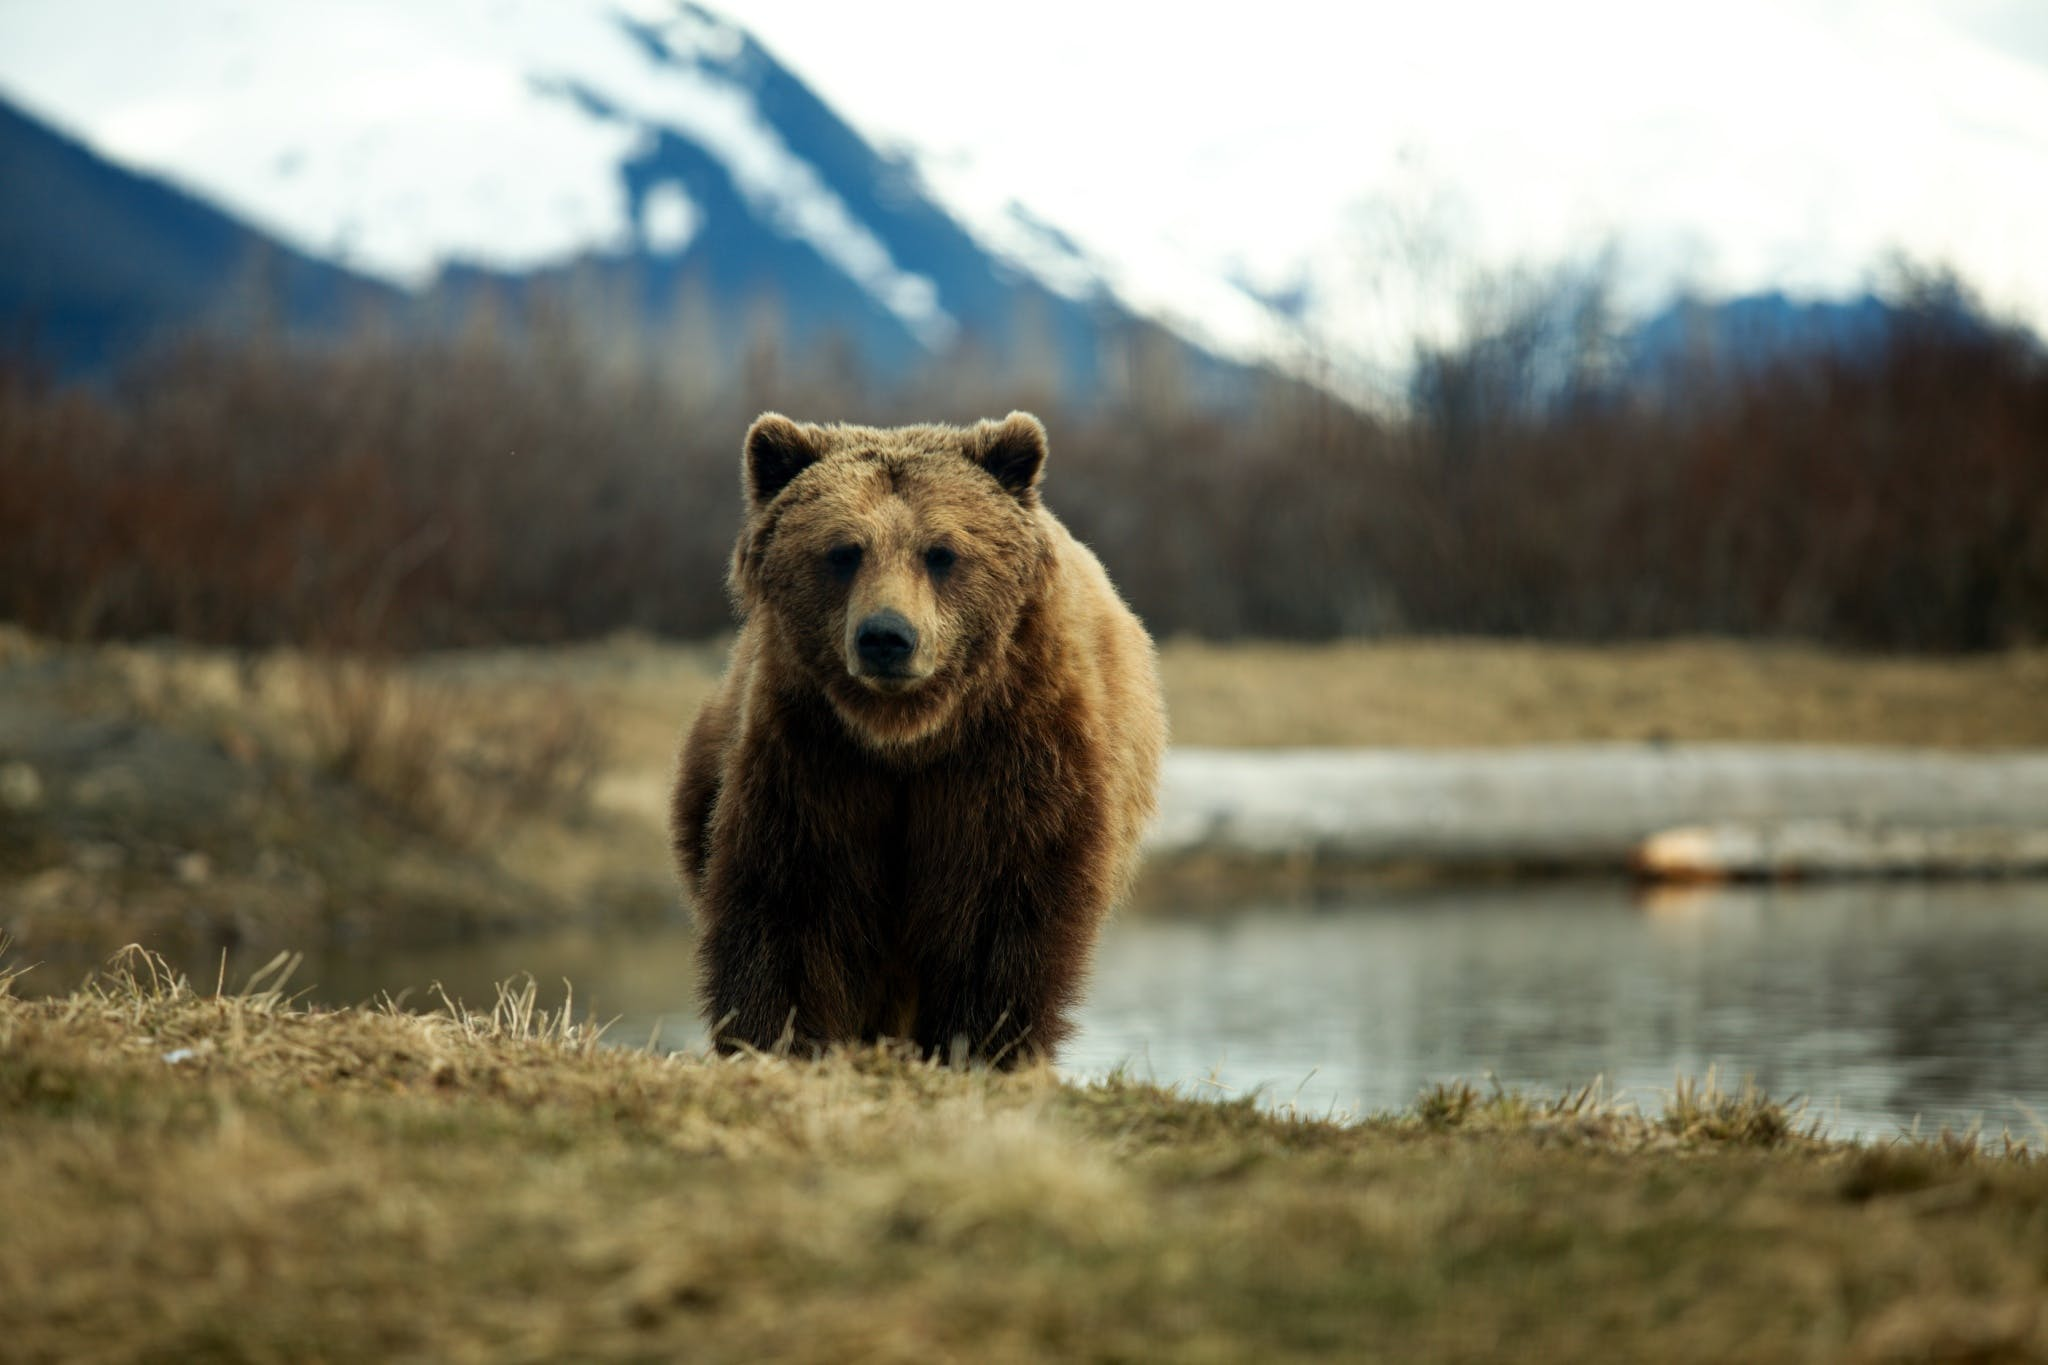 Bear in landscape. Creative Commons, Shane Huang, 2010.